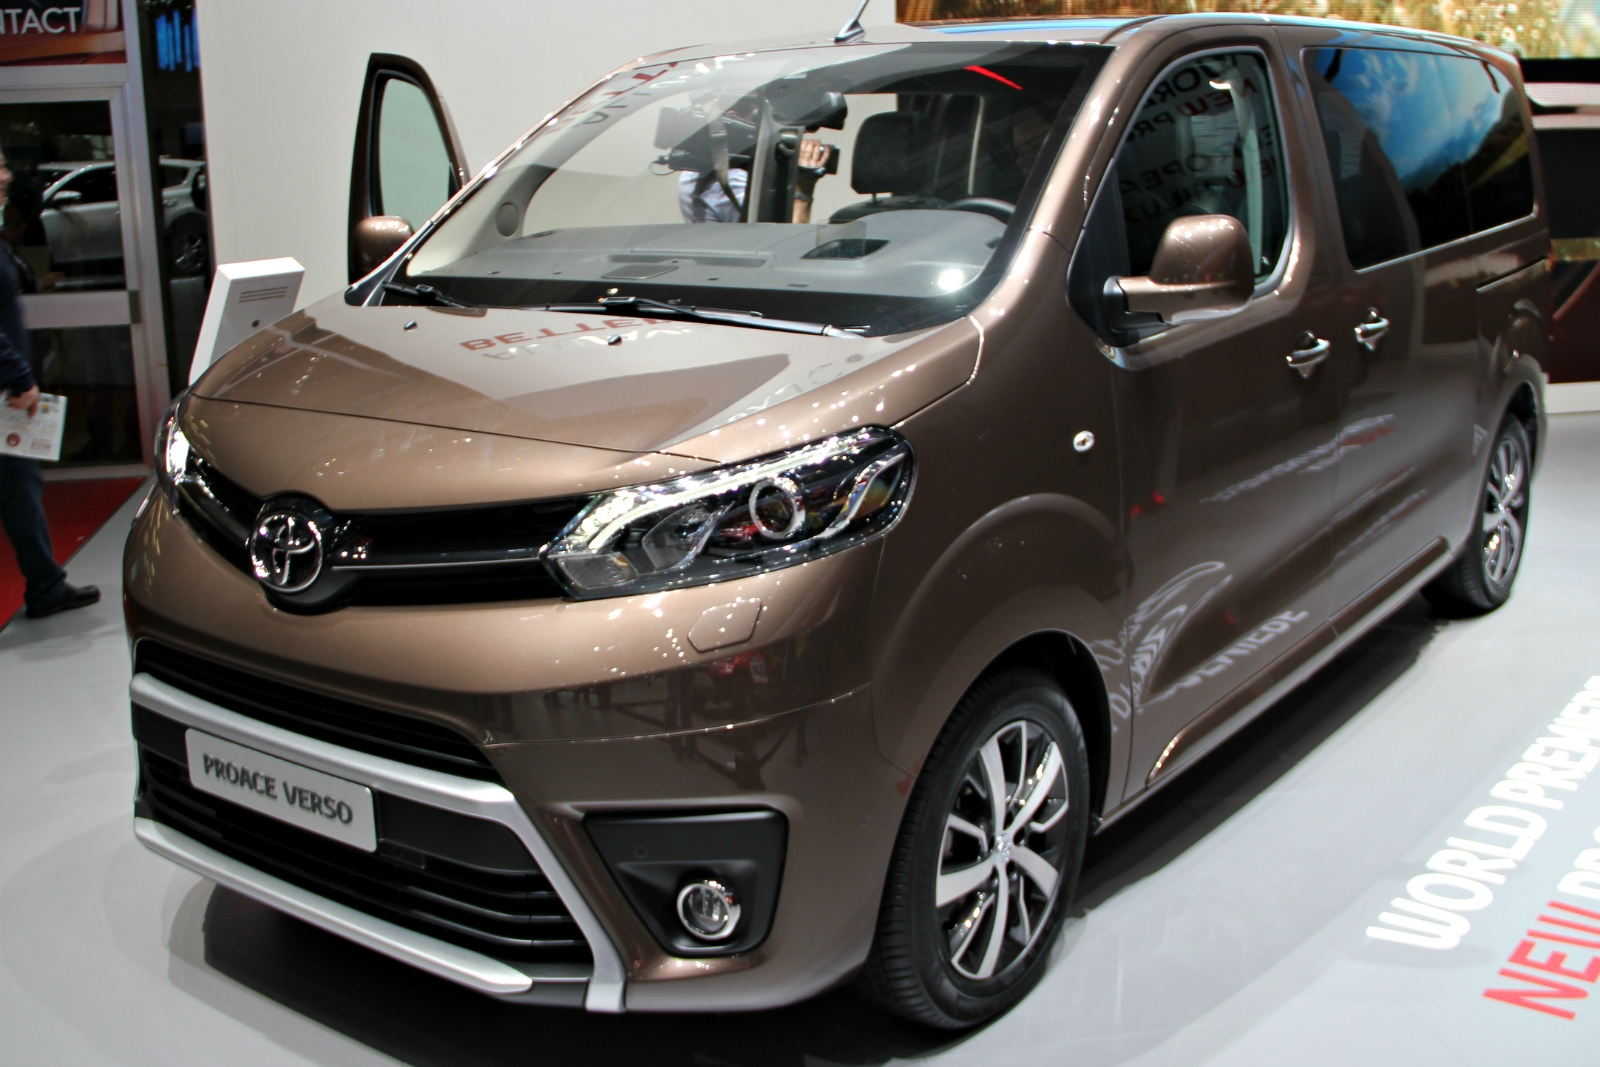 Toyota proace verso l 39 utilitaire civilis en direct du for Salon 9 places tunisie